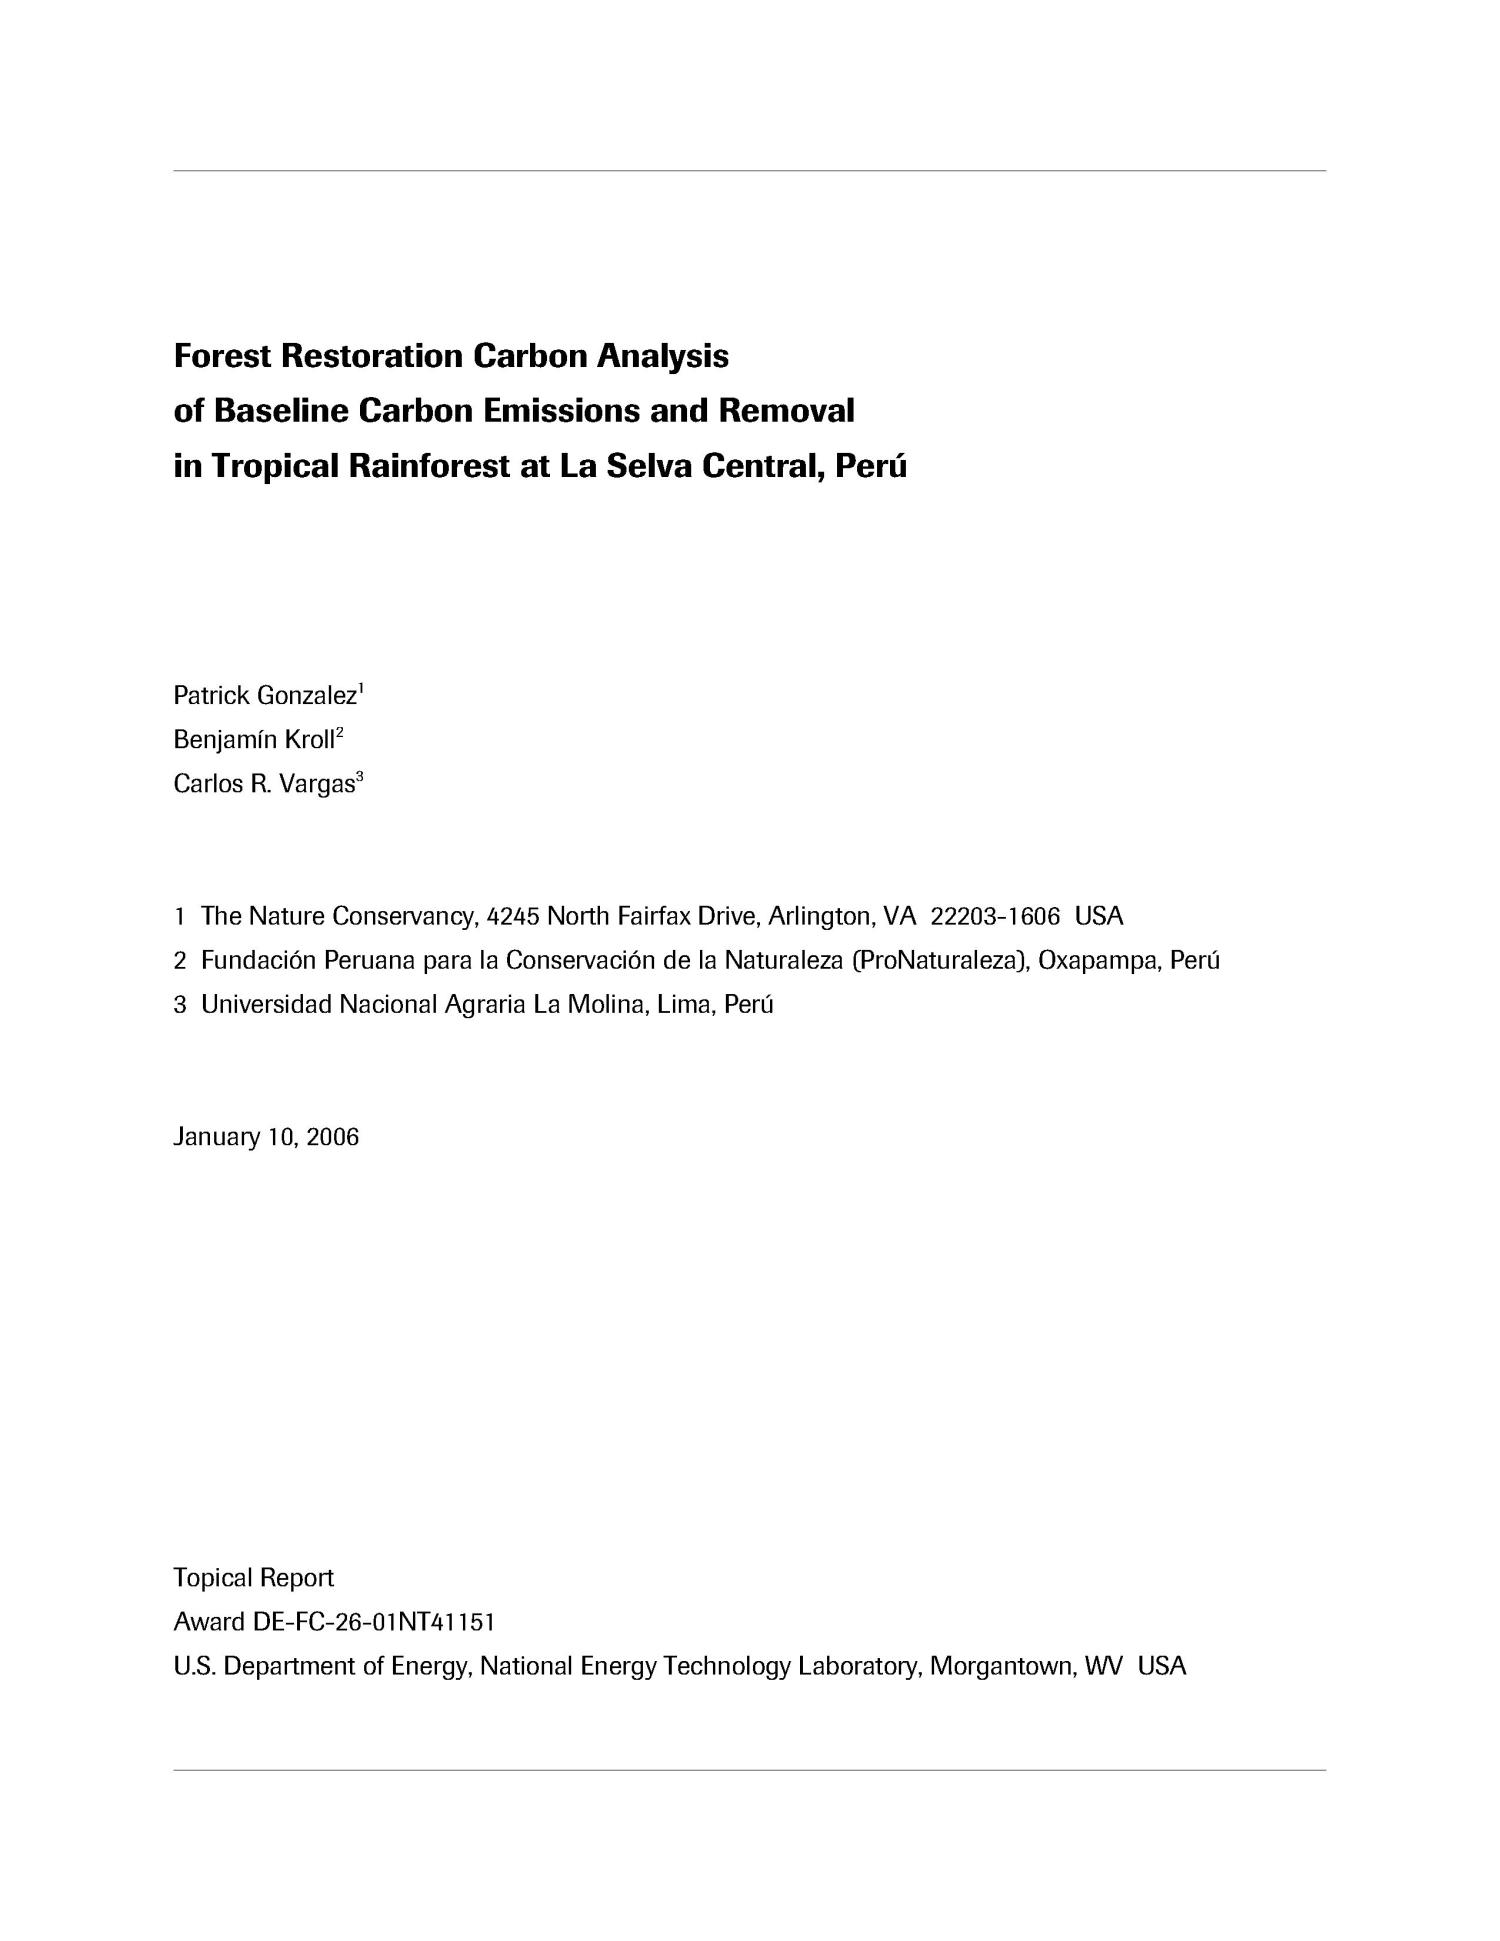 Forest Restoration Carbon Analysis of Baseline Carbon Emissions and Removal in Tropical Rainforest at La Selva Central, Peru                                                                                                      [Sequence #]: 1 of 57